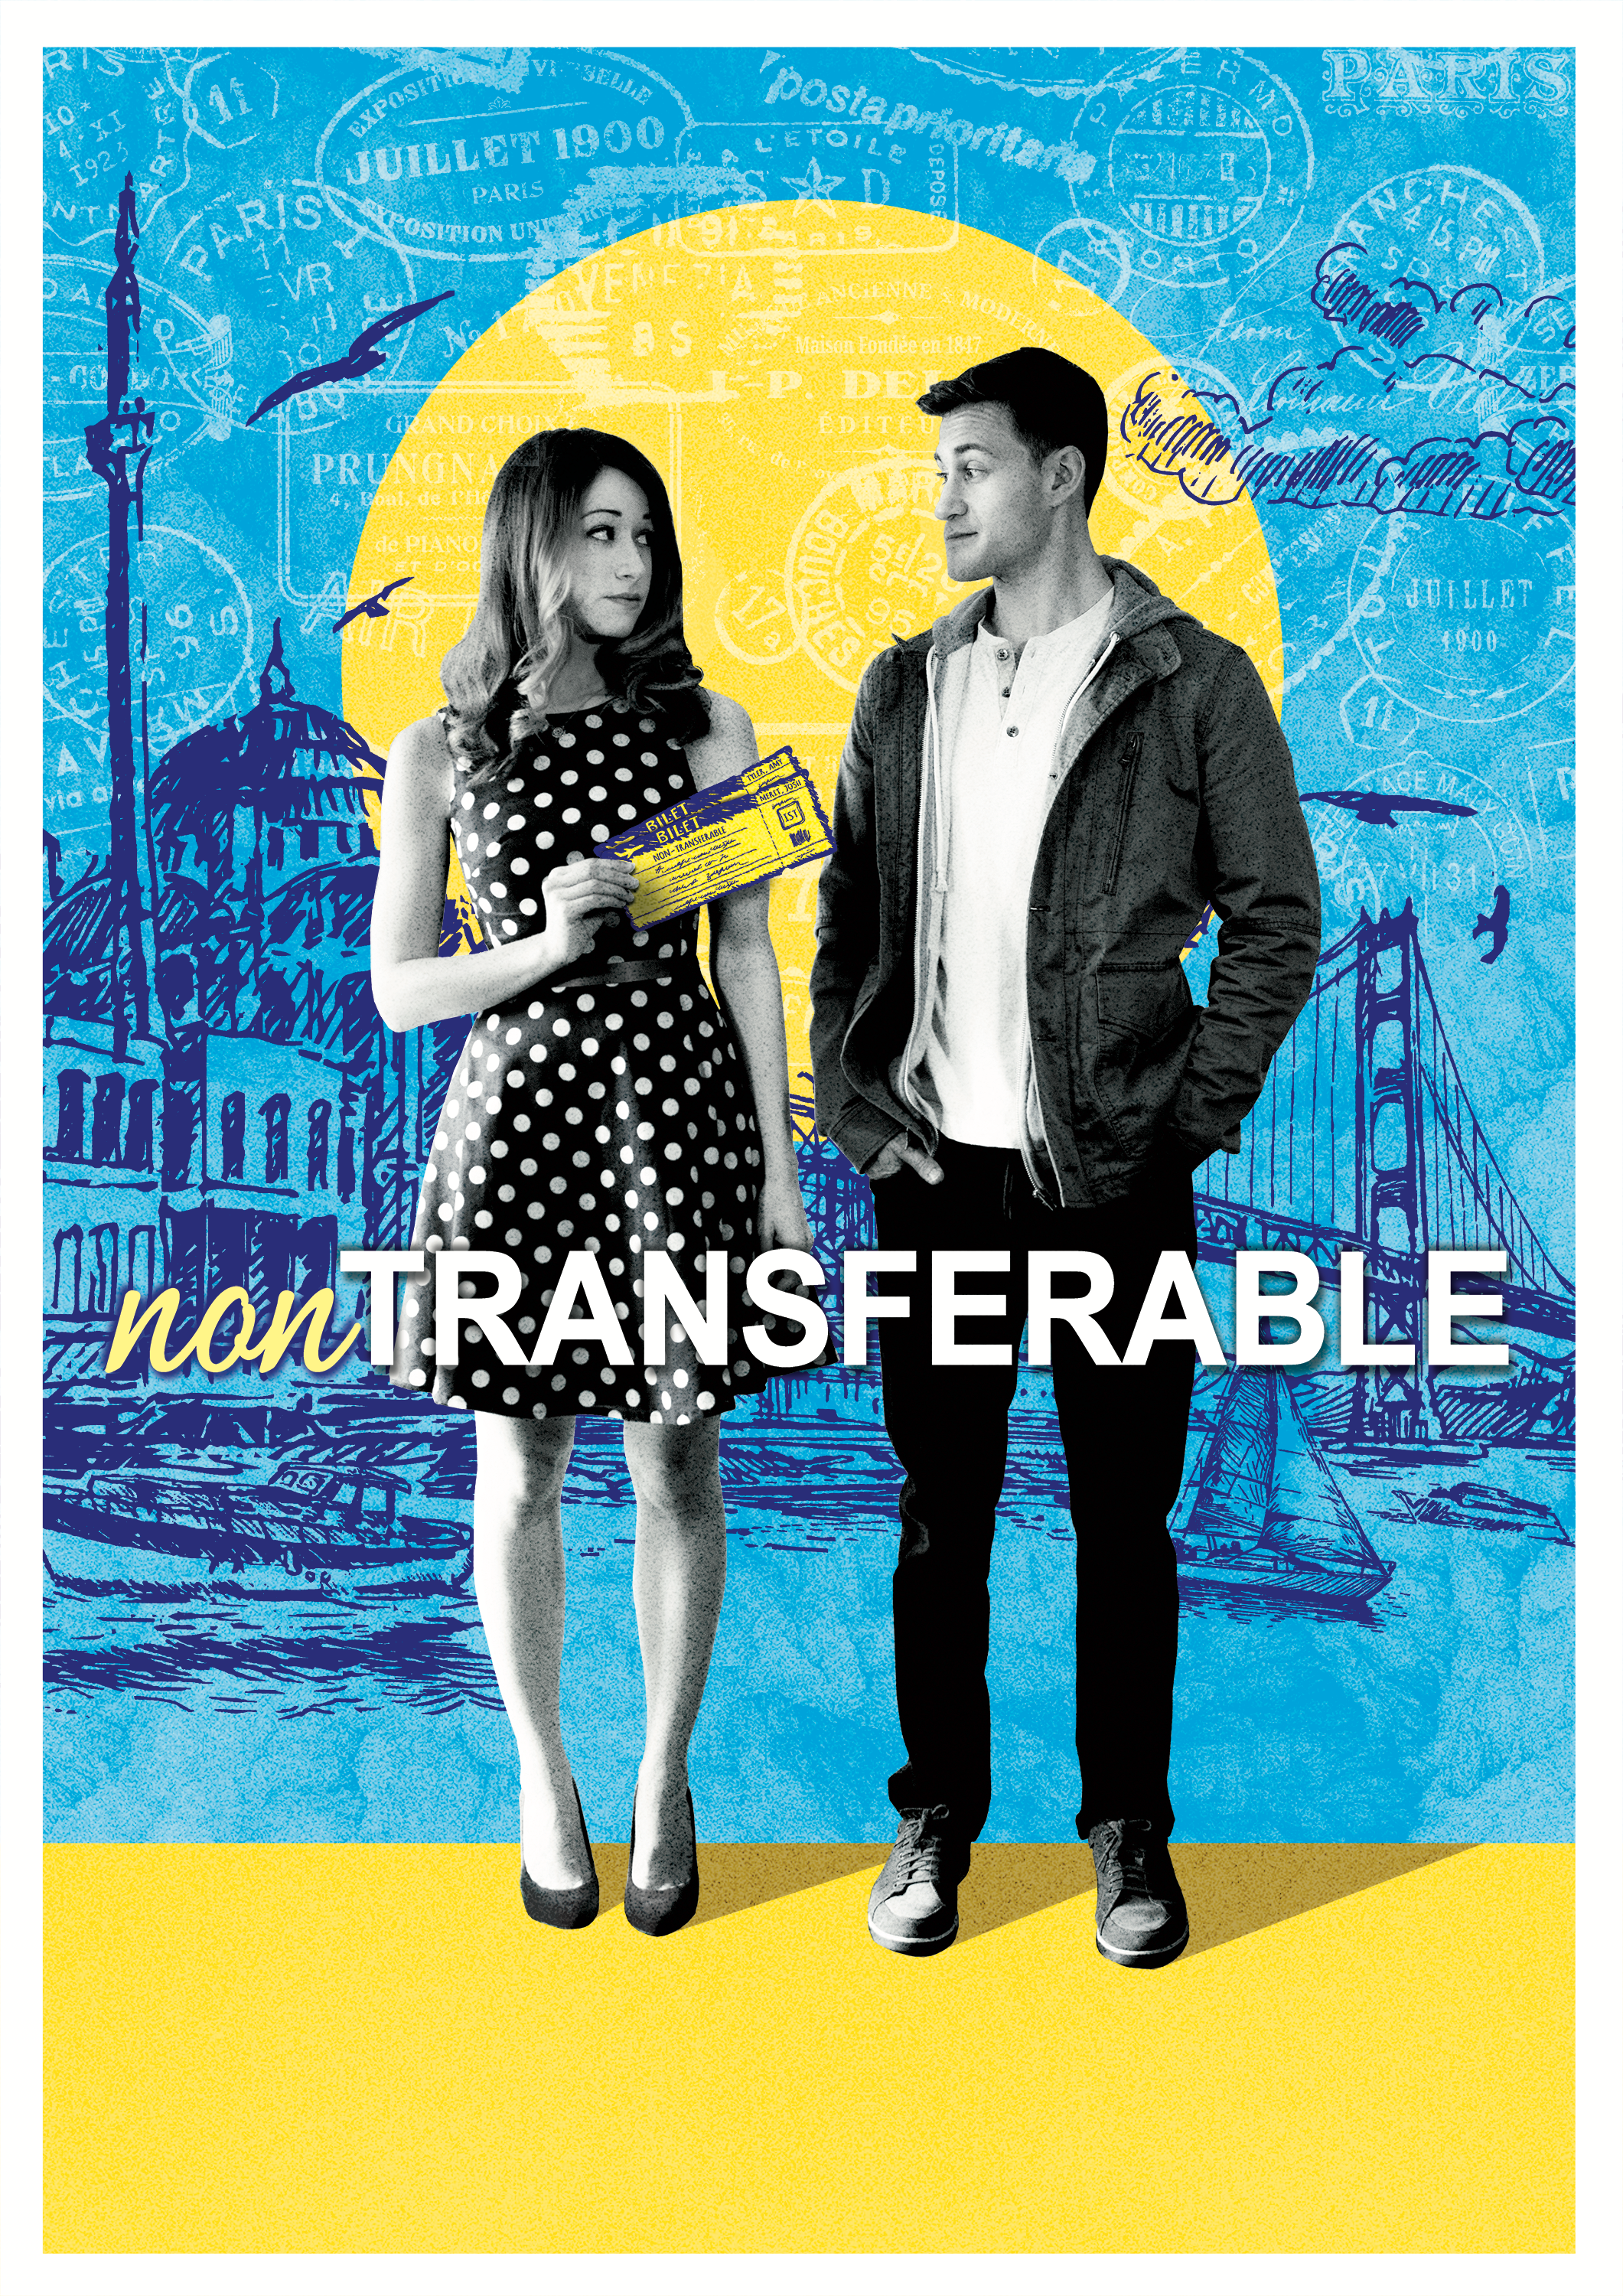 non-transferable - Stuck with non-refundable travel reservations in her ex-boyfriend's name, Amy (Ashley Clements) decides if she can't change the ticket, why not change the guy?